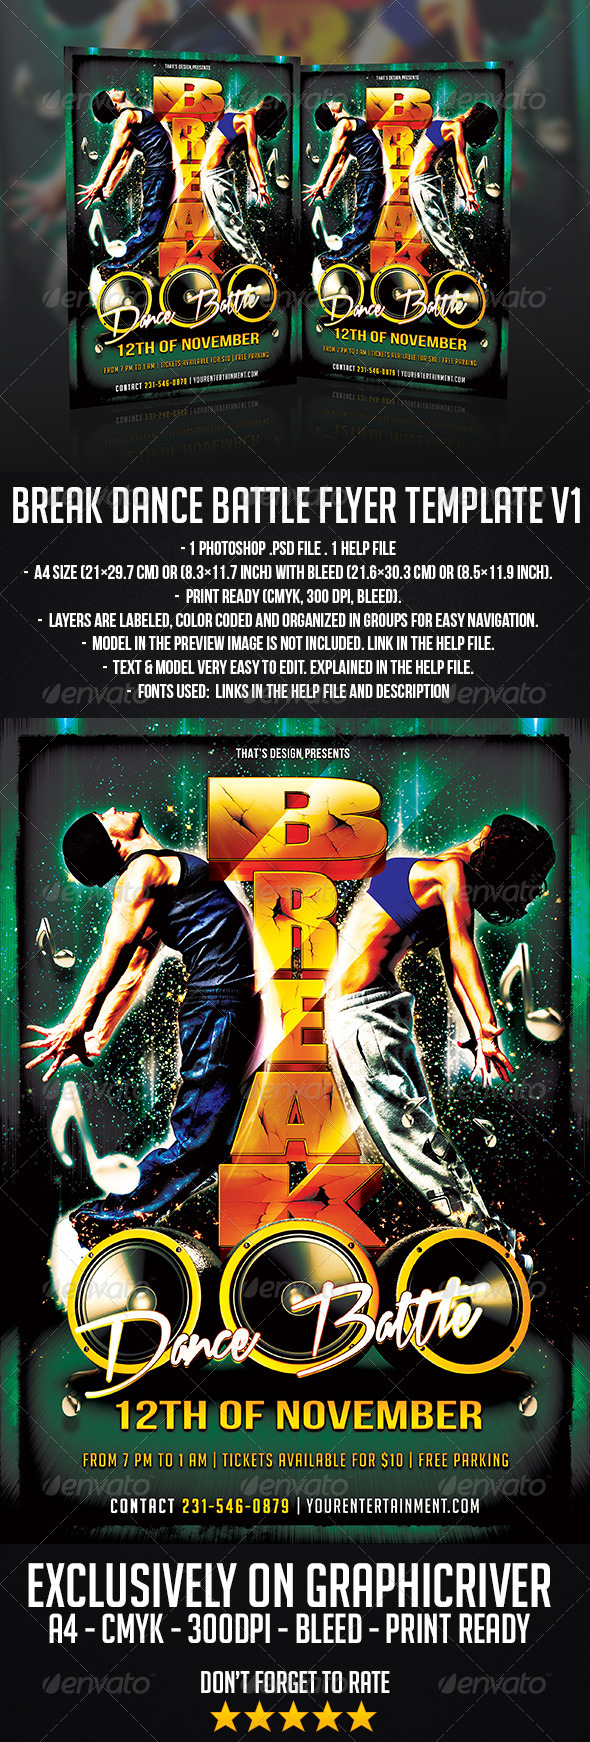 Break Dance Battle Flyer Template V1 - Clubs & Parties Events